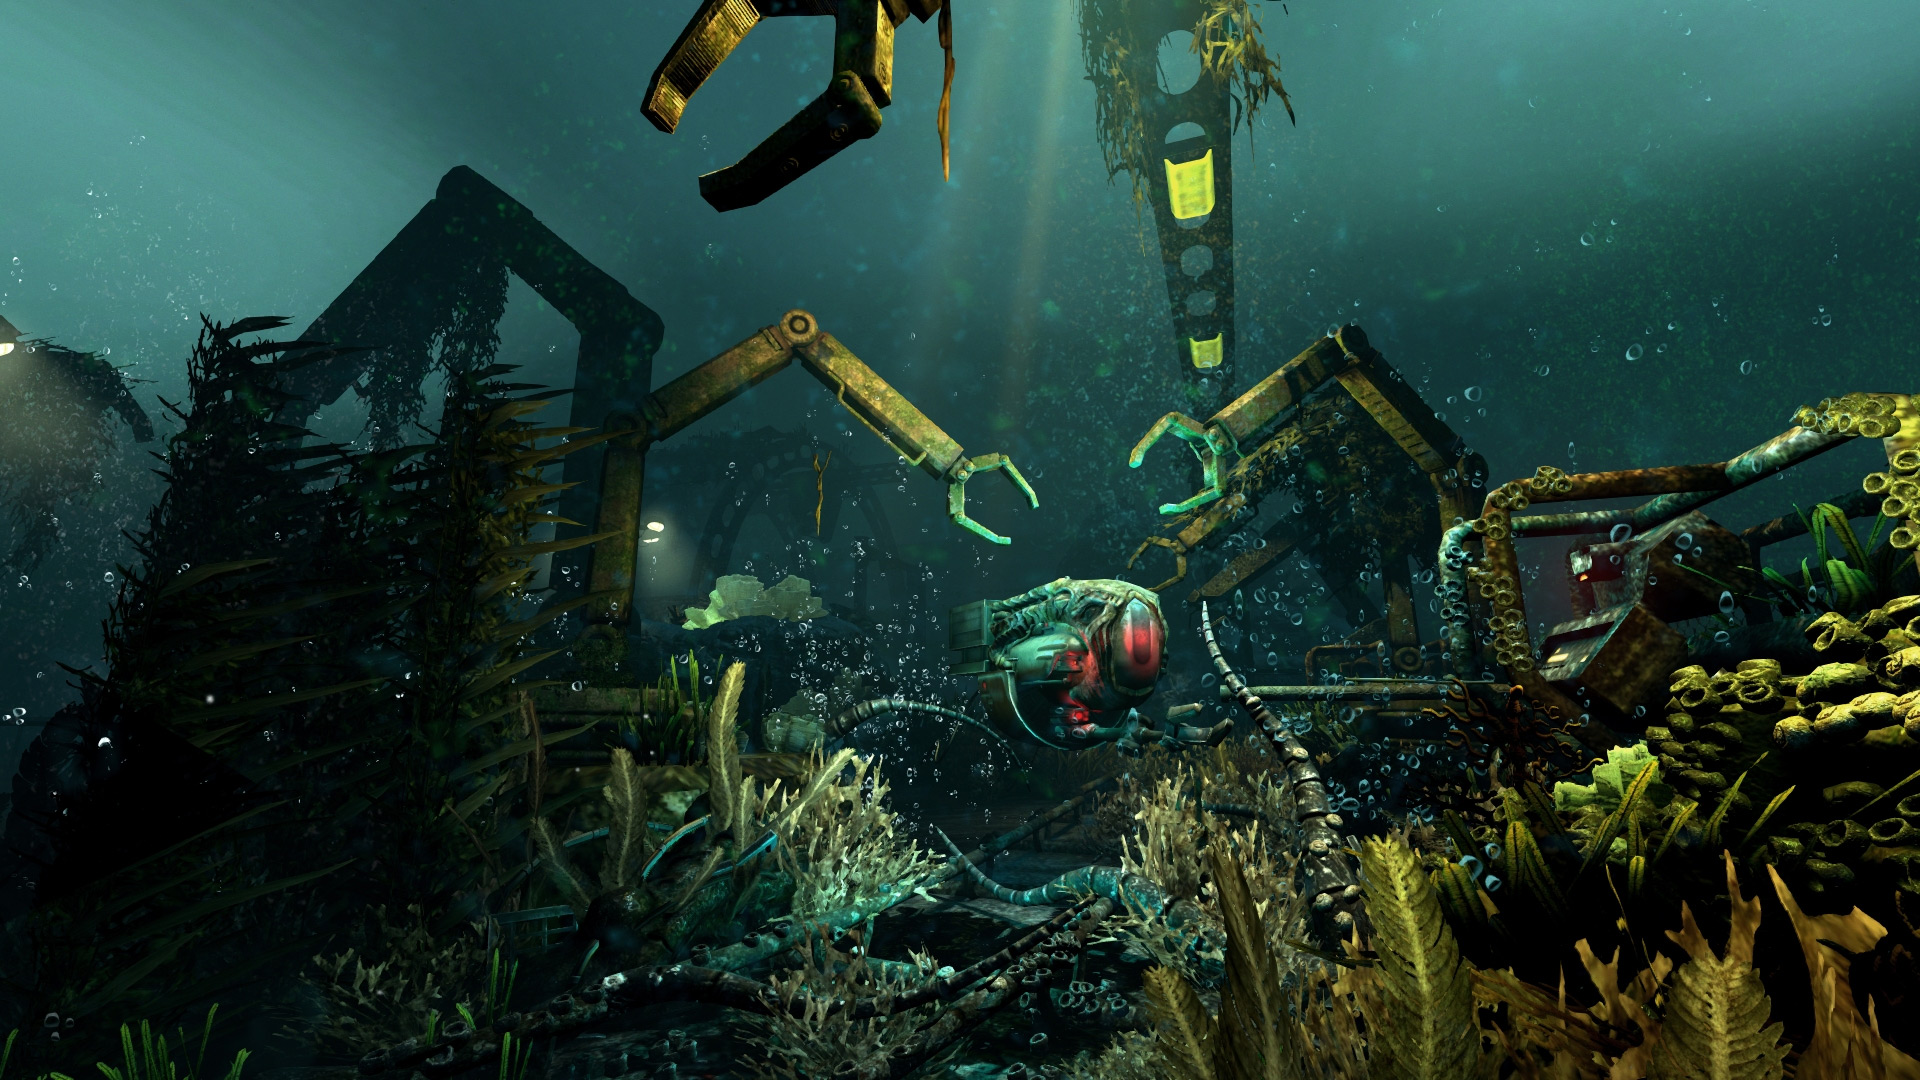 Snag the sci-fi horror adventure SOMA while it's totally free on PC screenshot